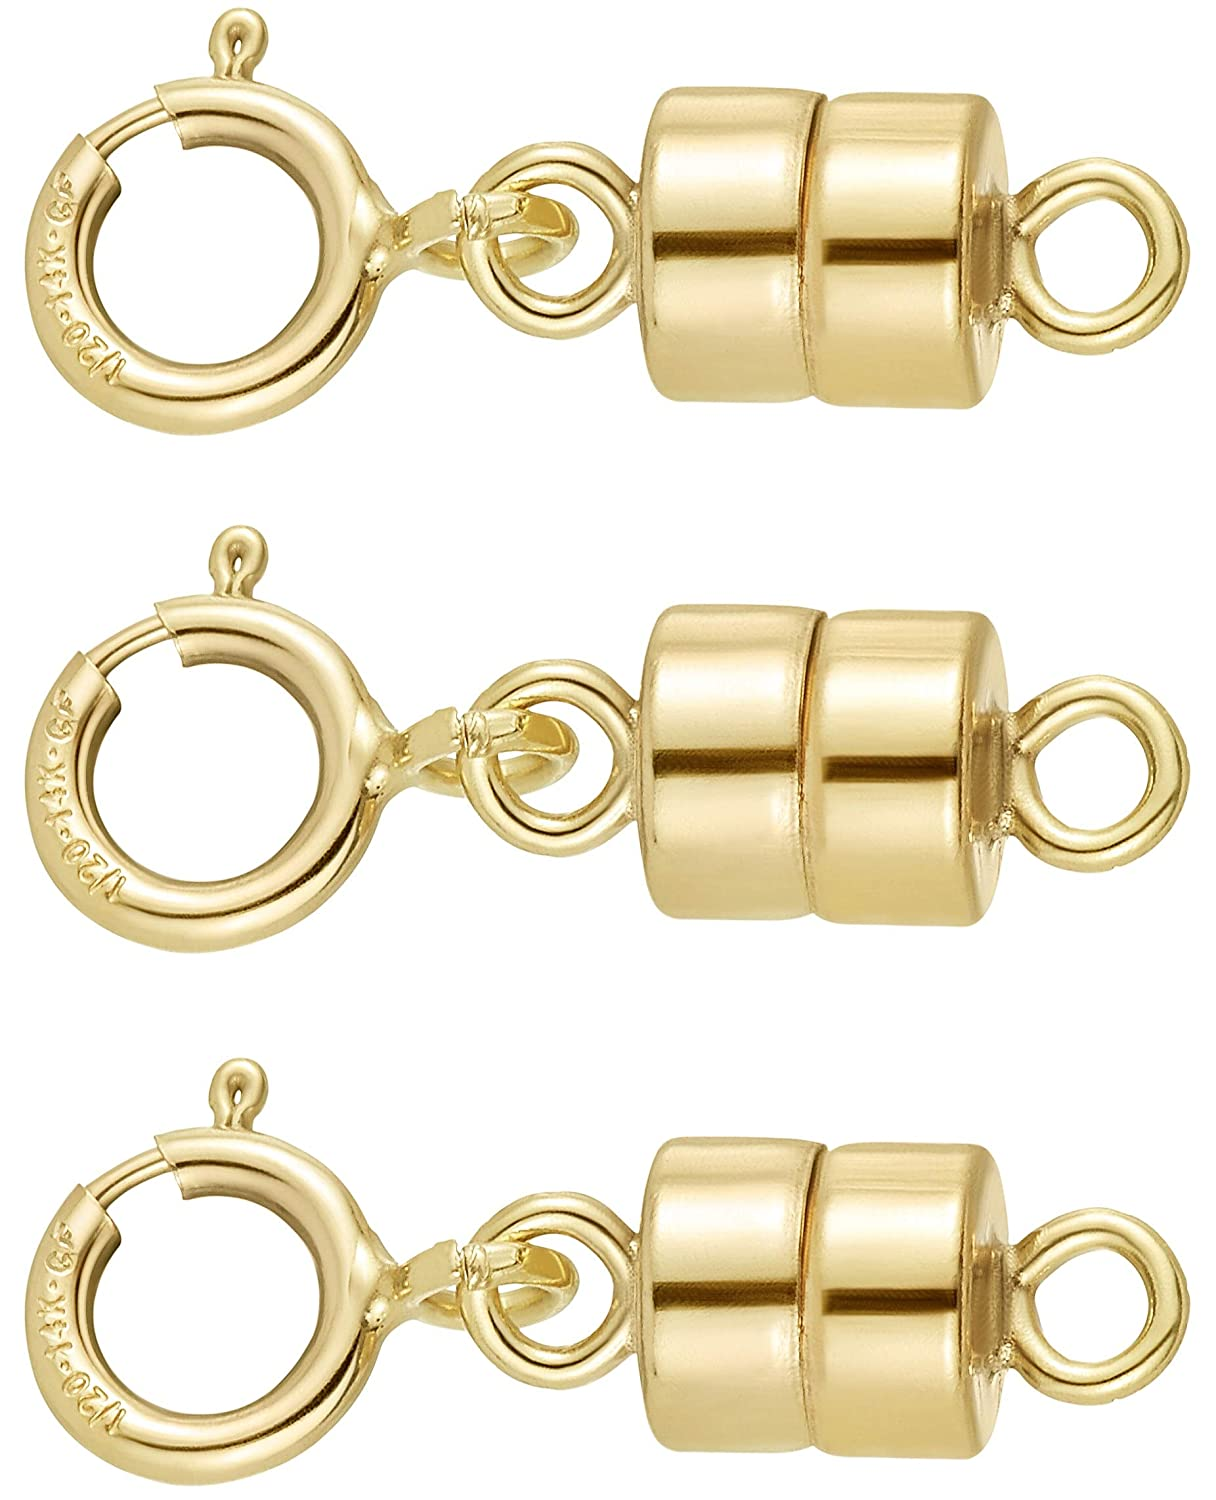 BEAD CAP BELL CONNECTOR 6mm BAIL w//loop LEAF 4 prong or FILIGREE 7 prong 25pcs Gold Leaf